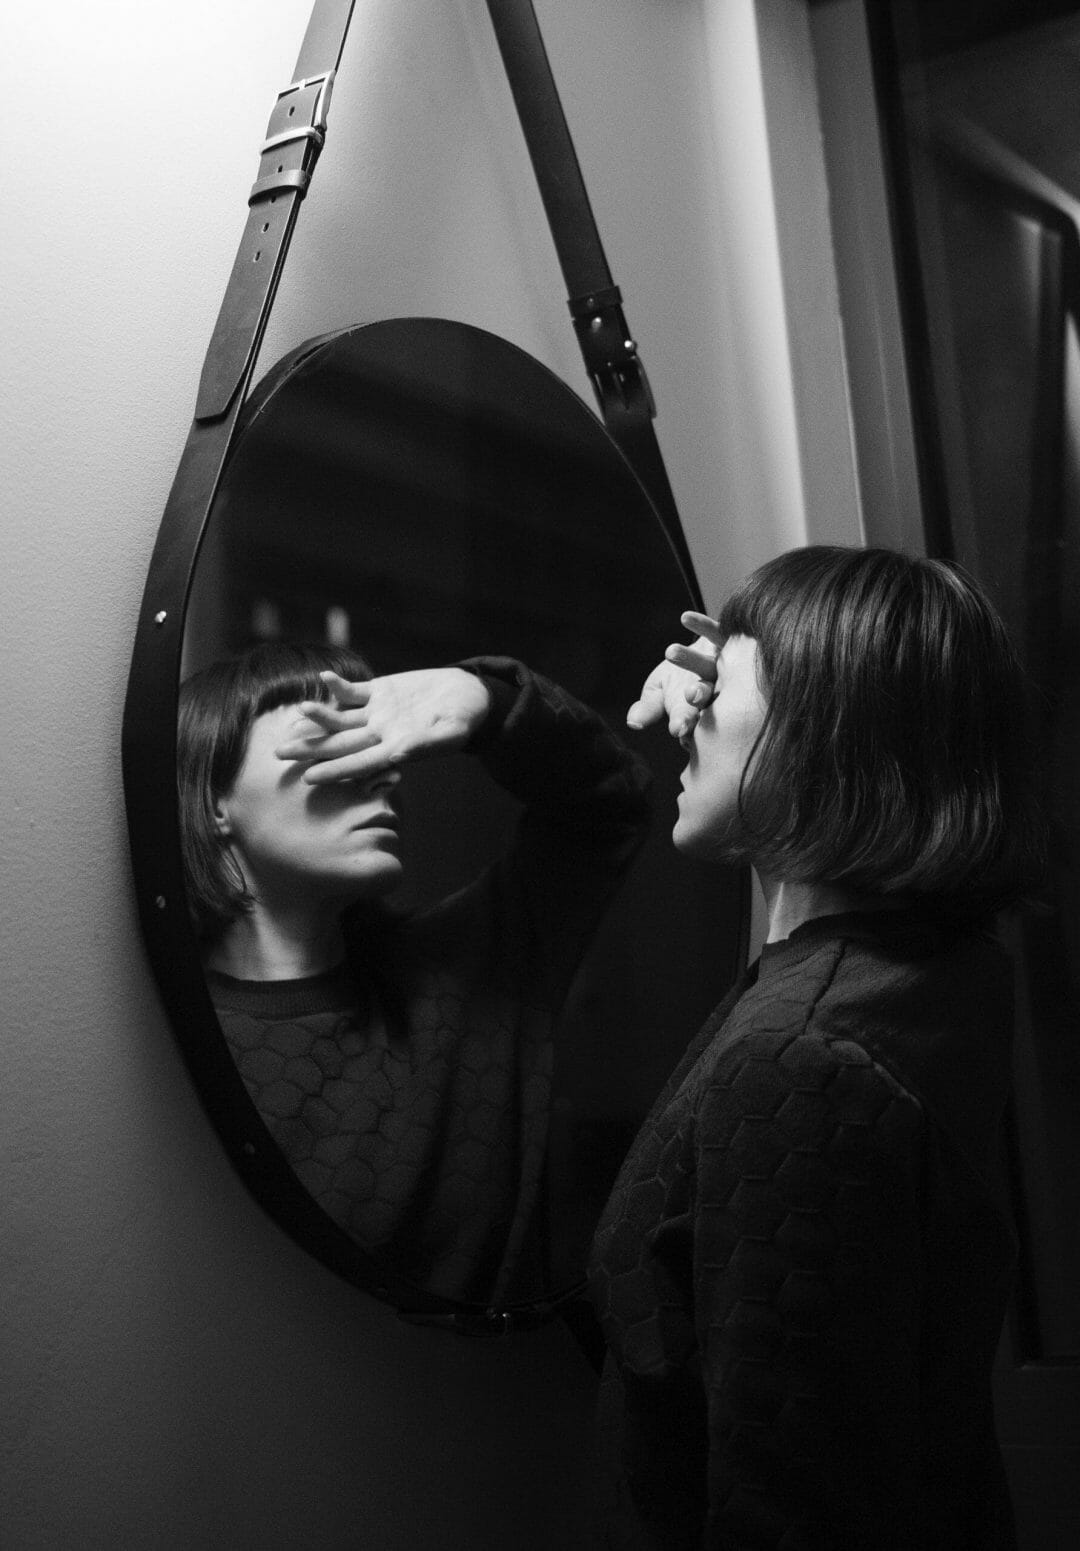 black and white photo of woman covering face while standing in front of mirror